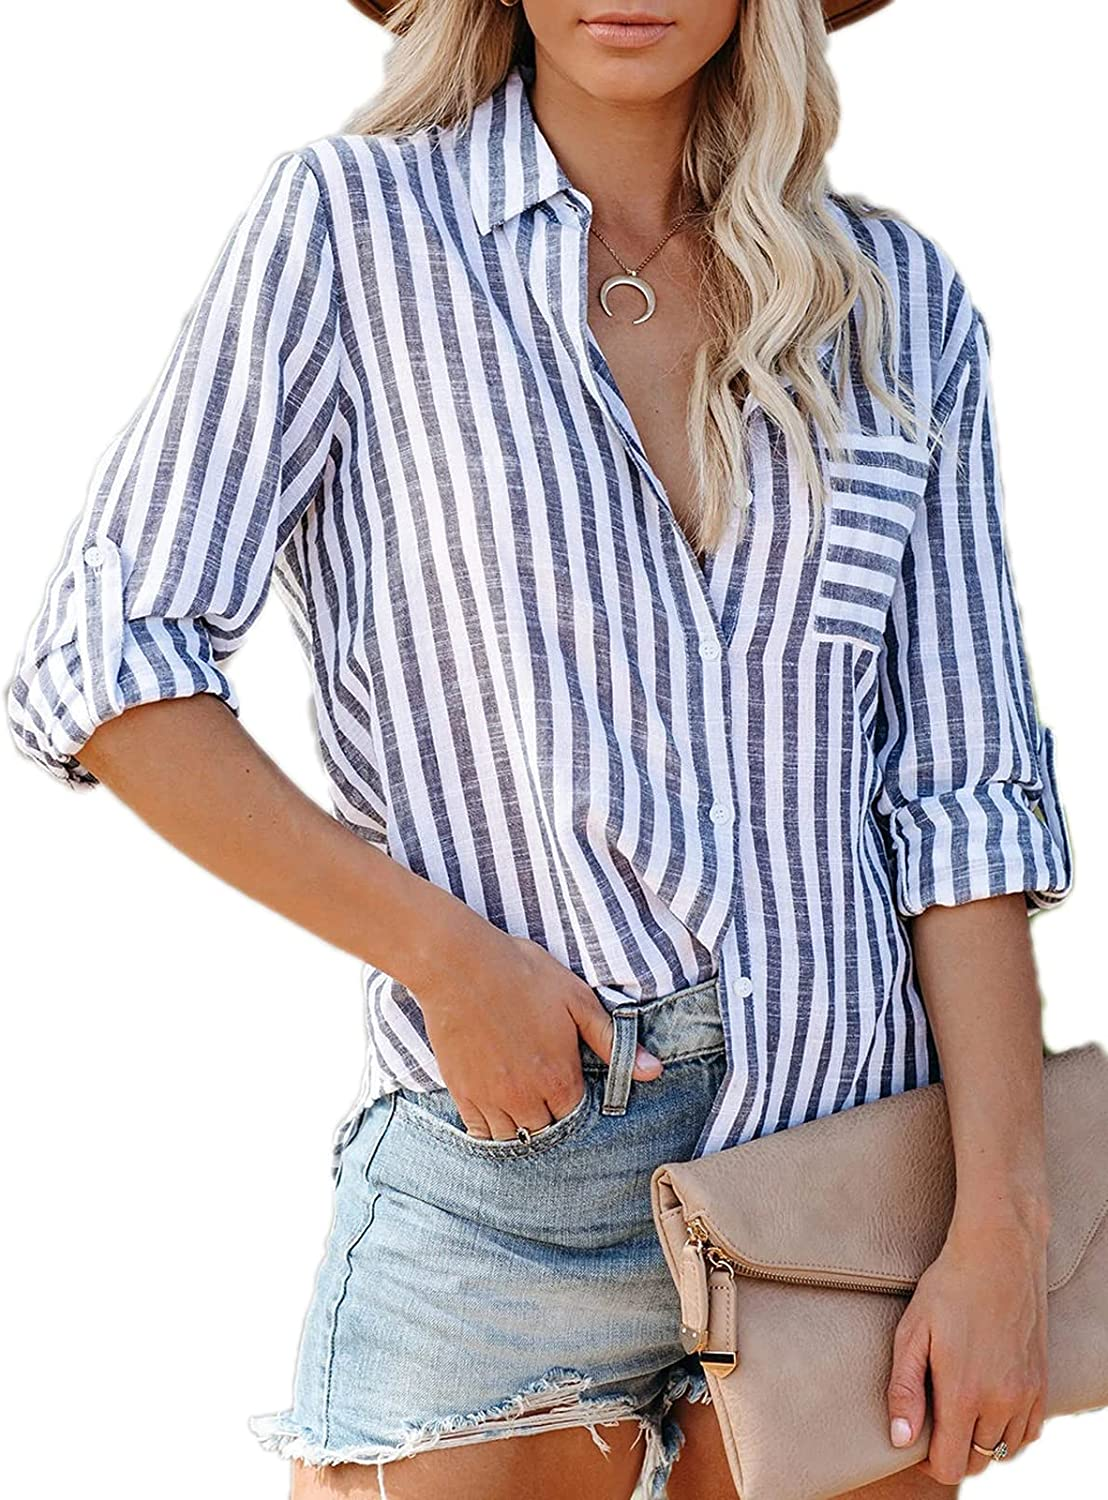 Paintcolors Women's Stripes Button Down Shirts Roll-up Sleeve Tops V Neck Collared Casual Work Blouses Tunics with Pockets